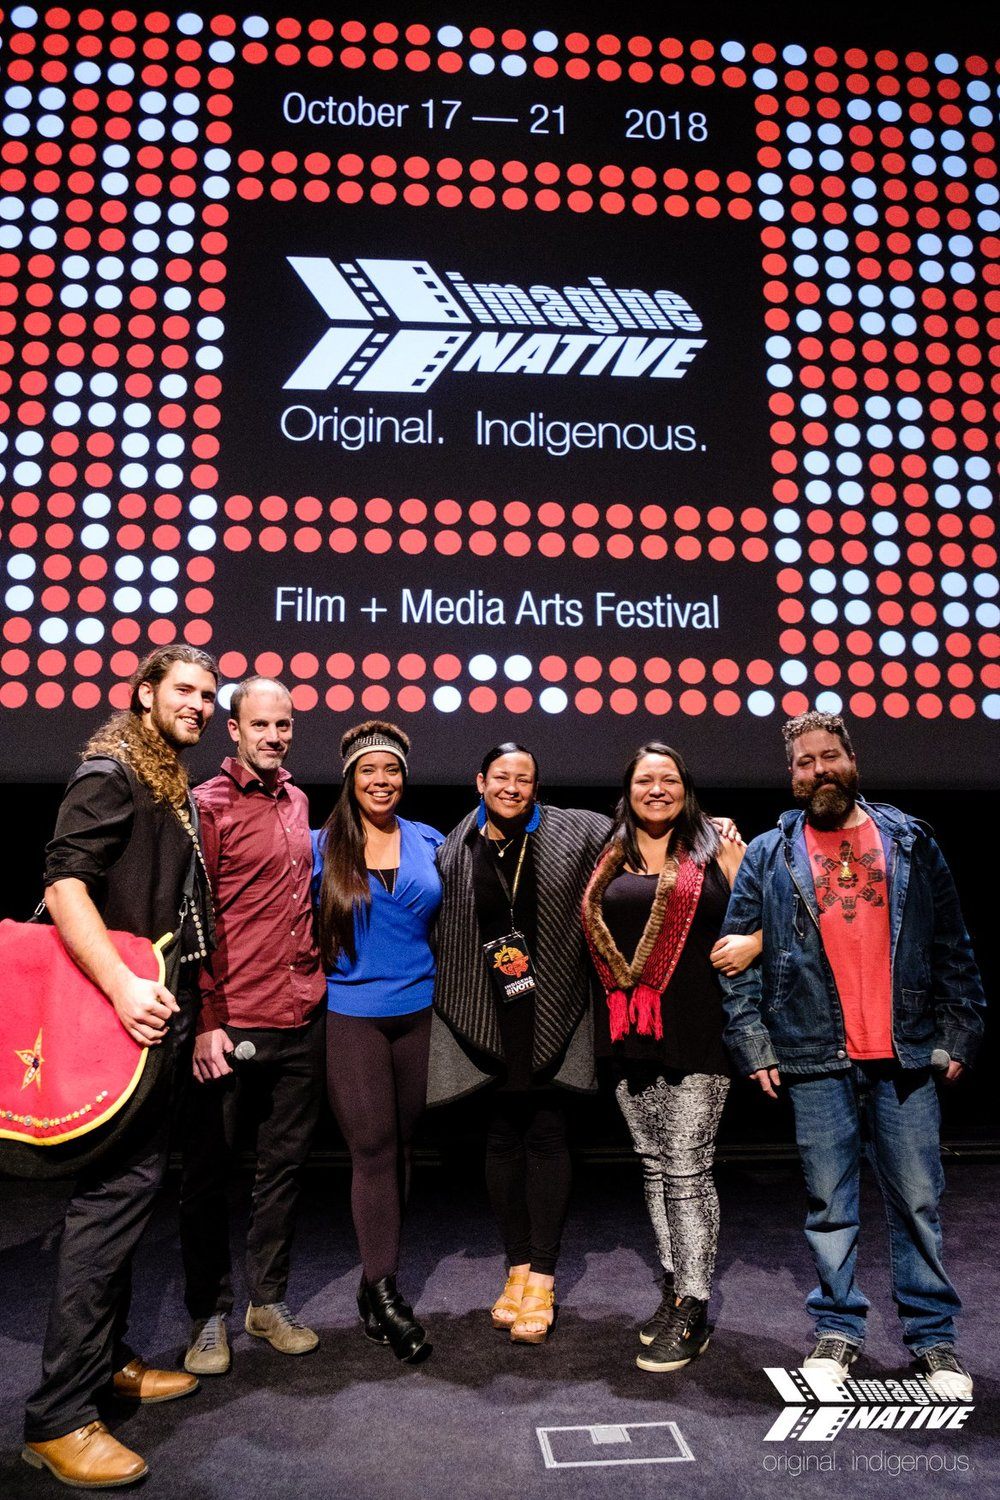 Edge of the Knife   had a successful run at ImagineNative festival in Toronto. Photo credit ImagineNative/Michael Tjioe.